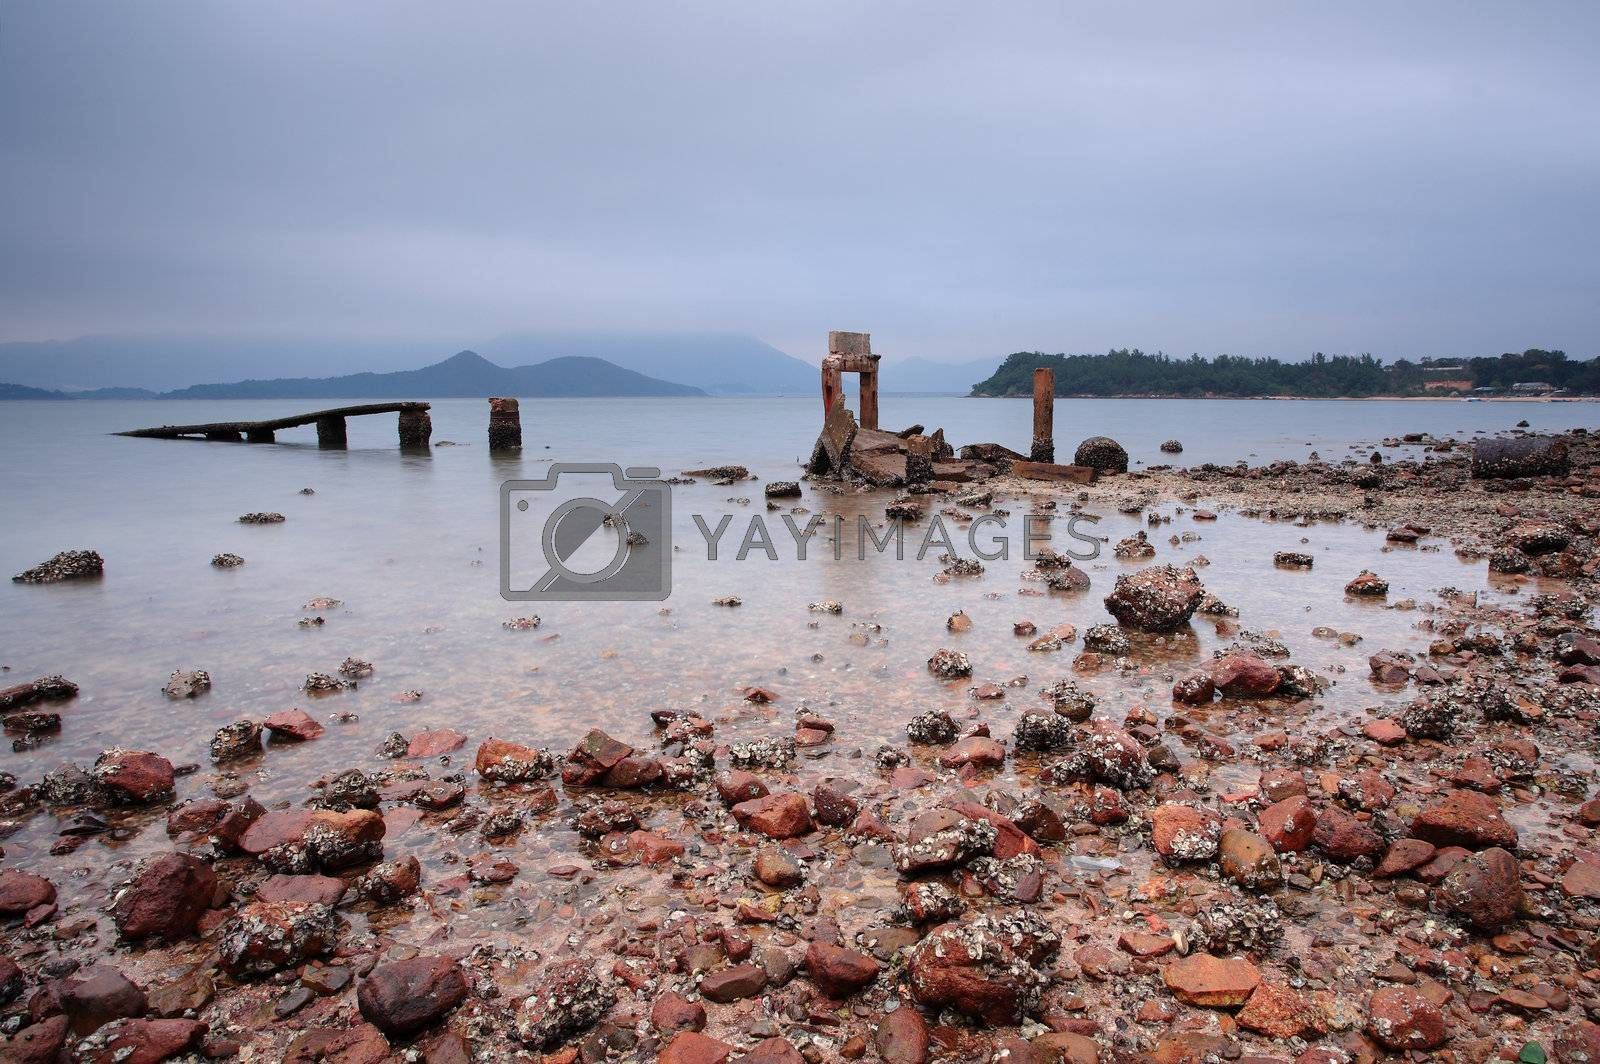 Royalty free image of a desolate and broken peer by leungchopan